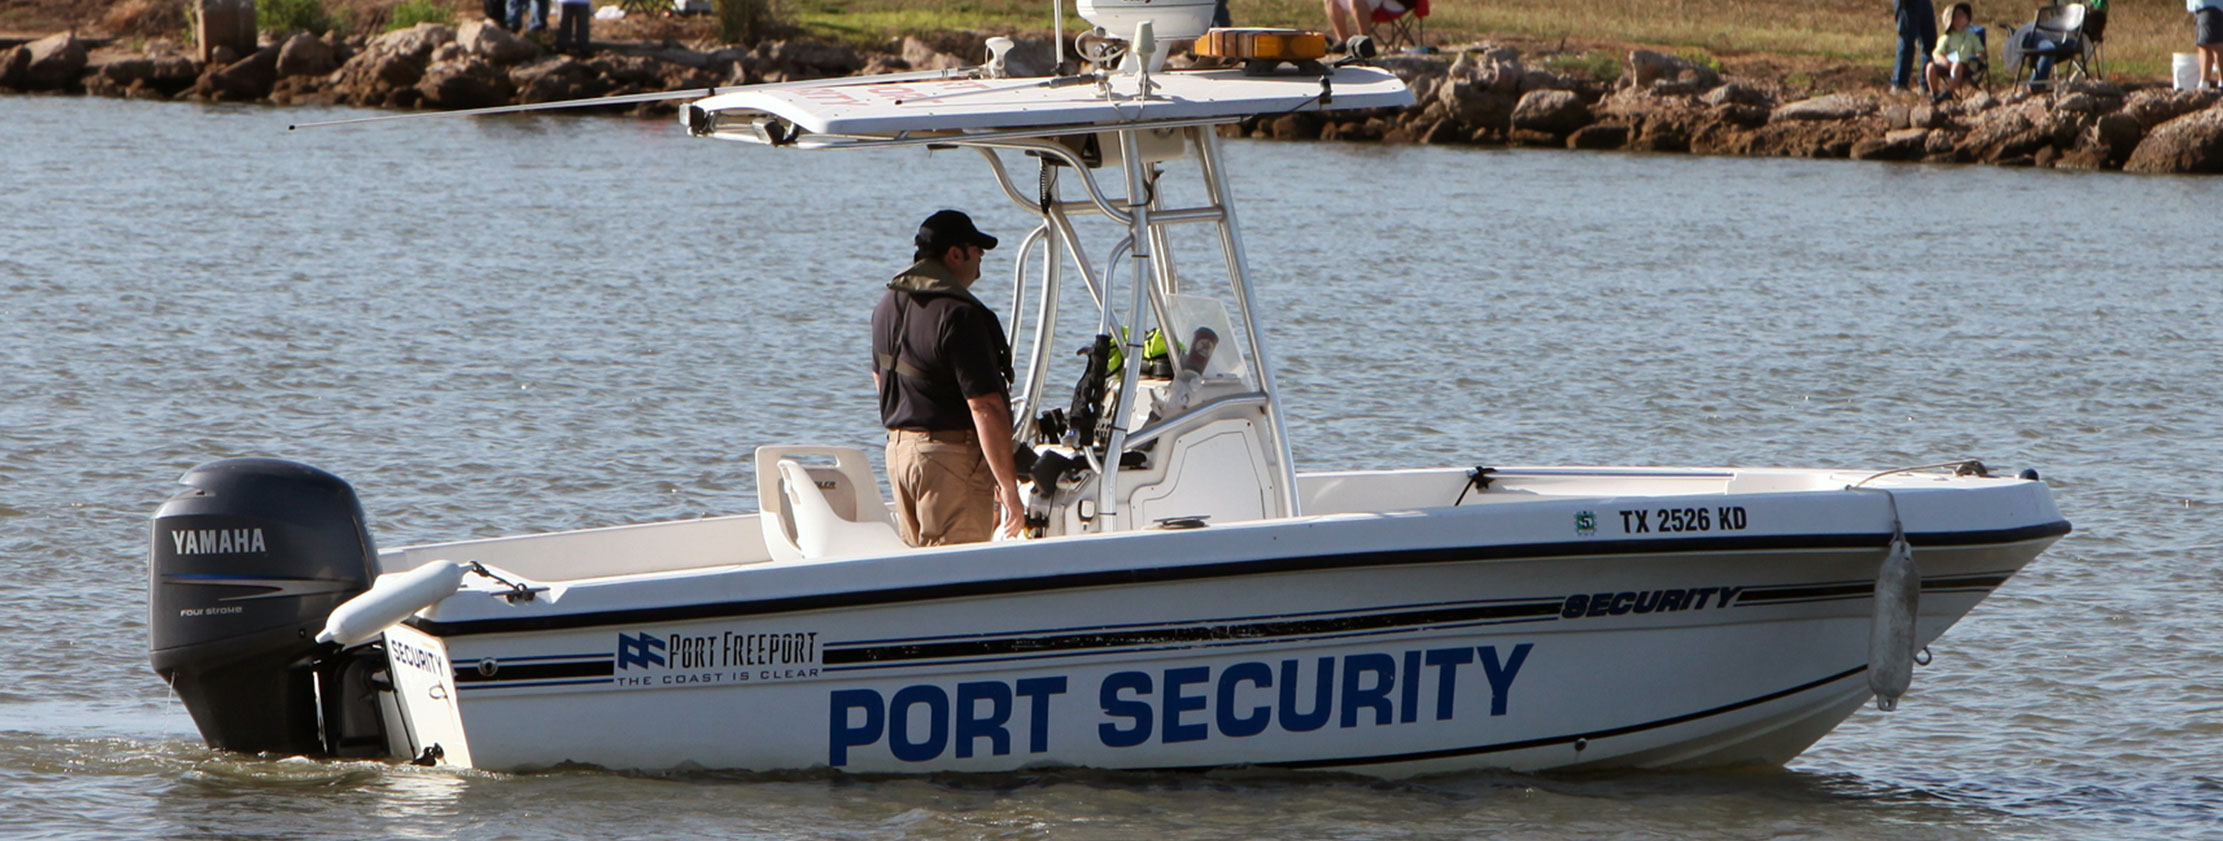 port security at port freeport texas